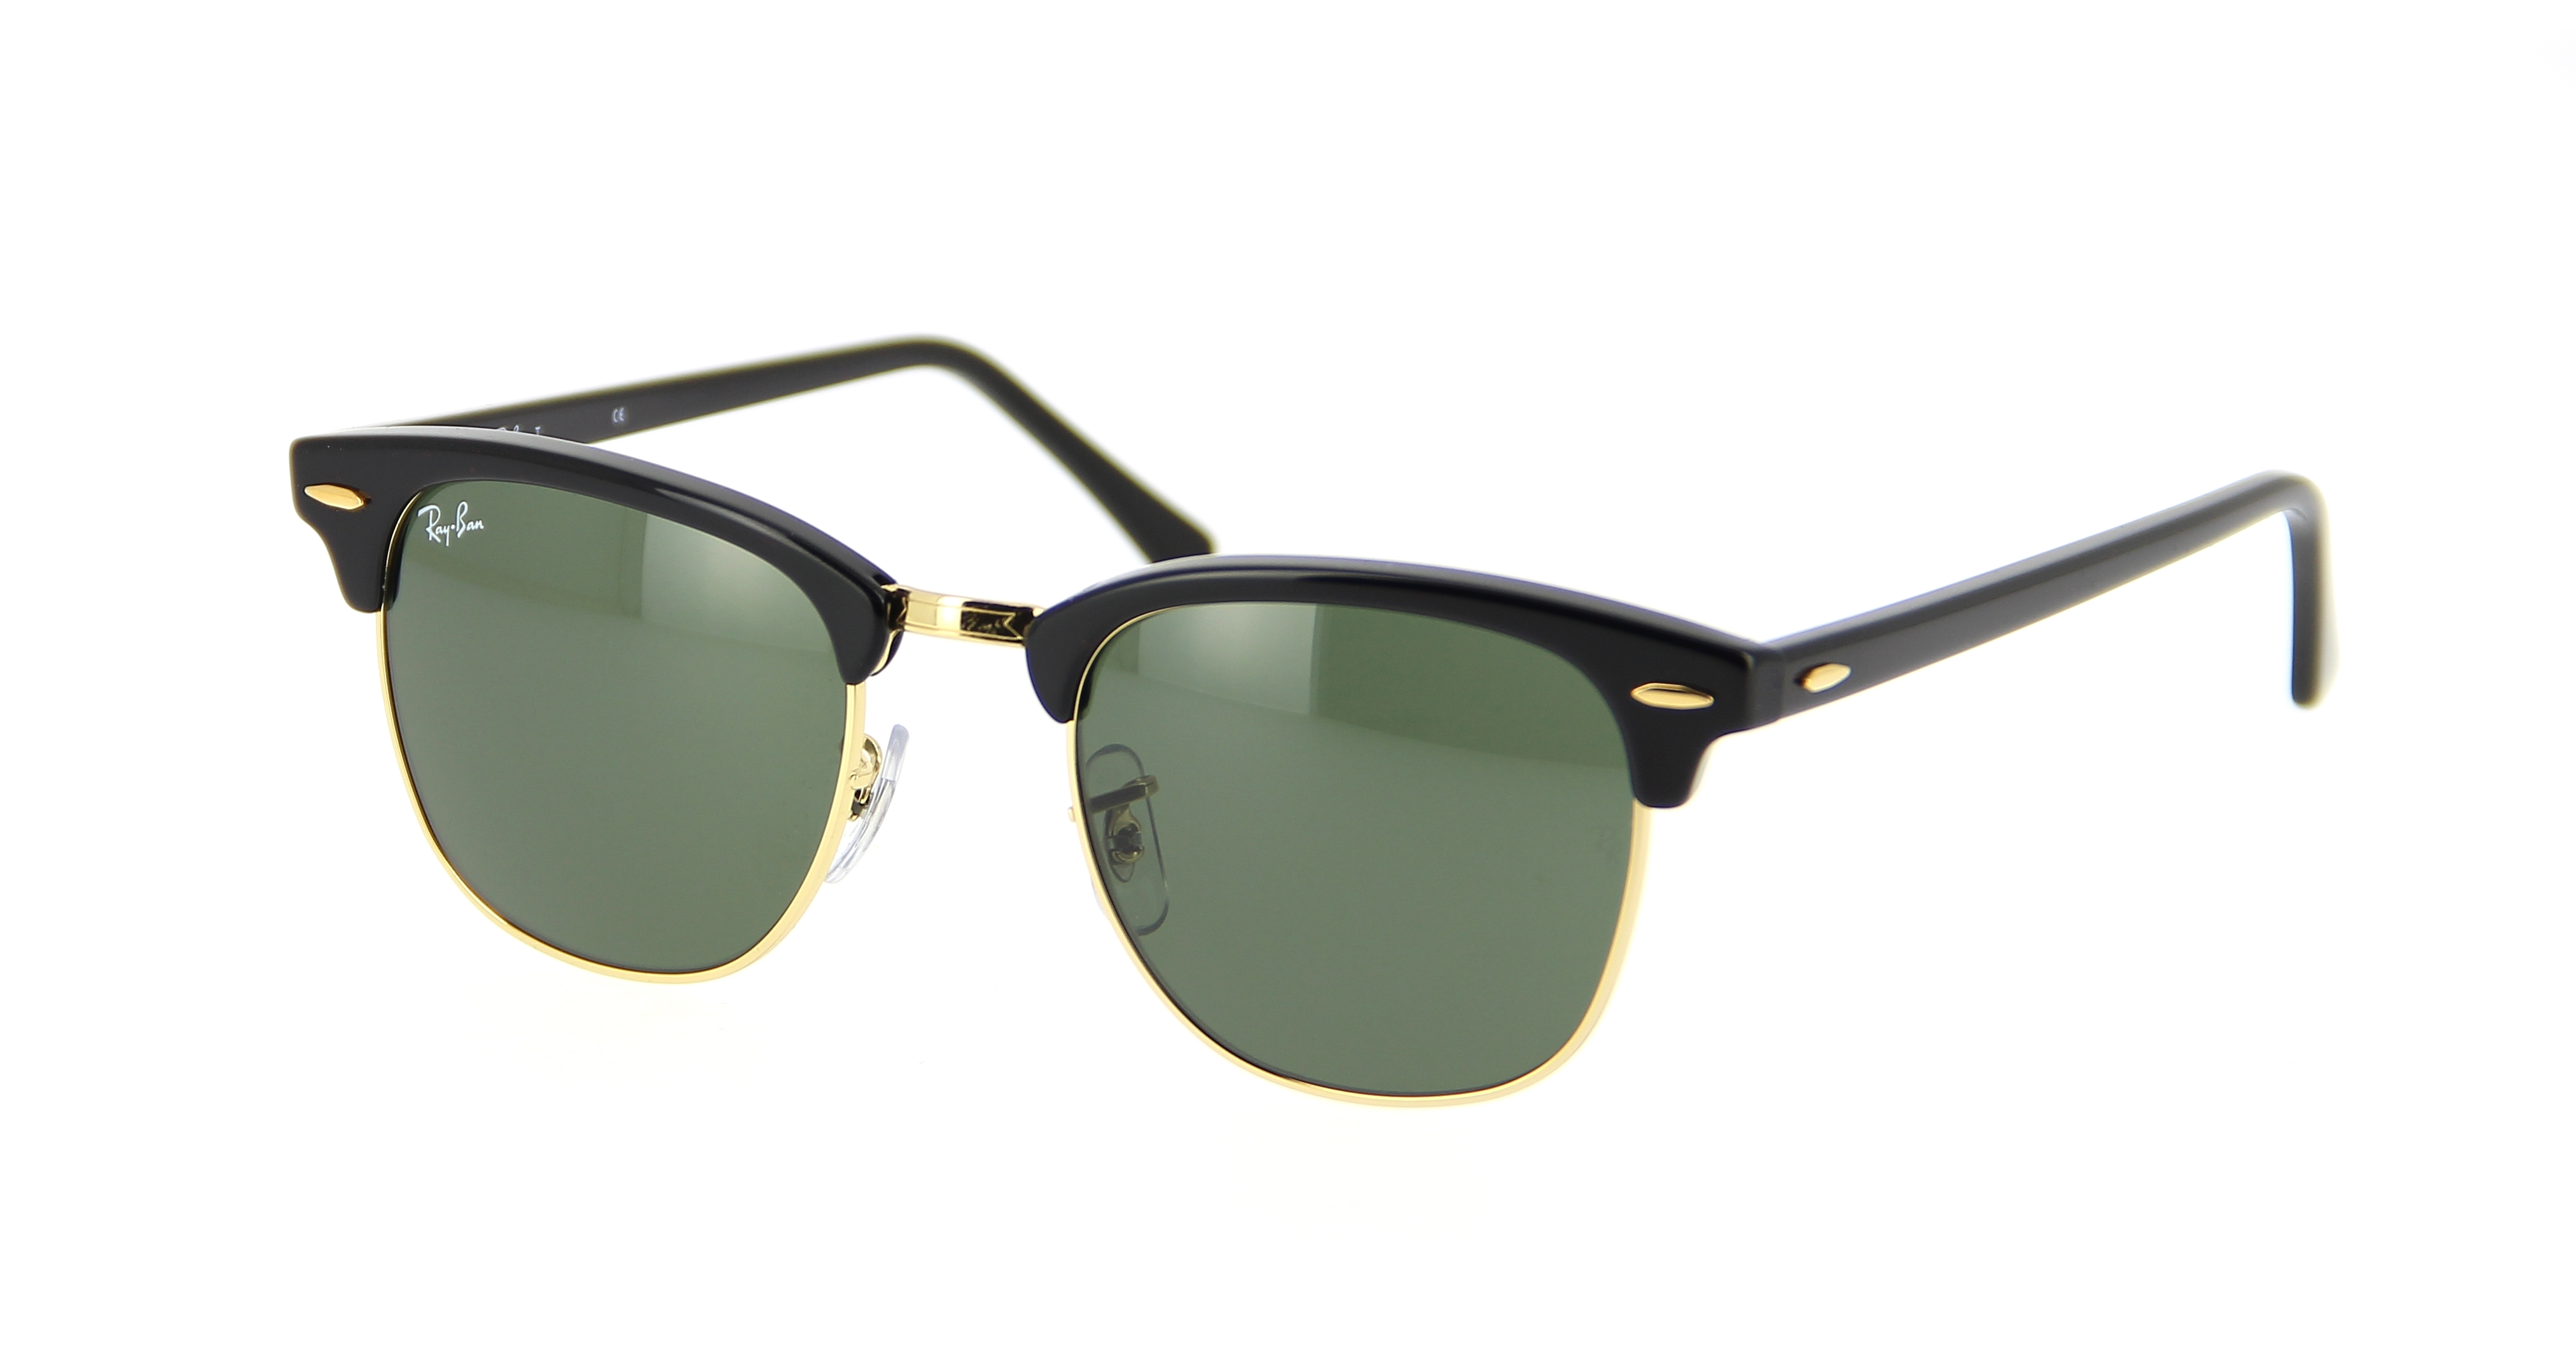 55aae39644 Lunettes de soleil RAY BAN Clubmaster RB 3016 W0365 51 21 Mixte ...